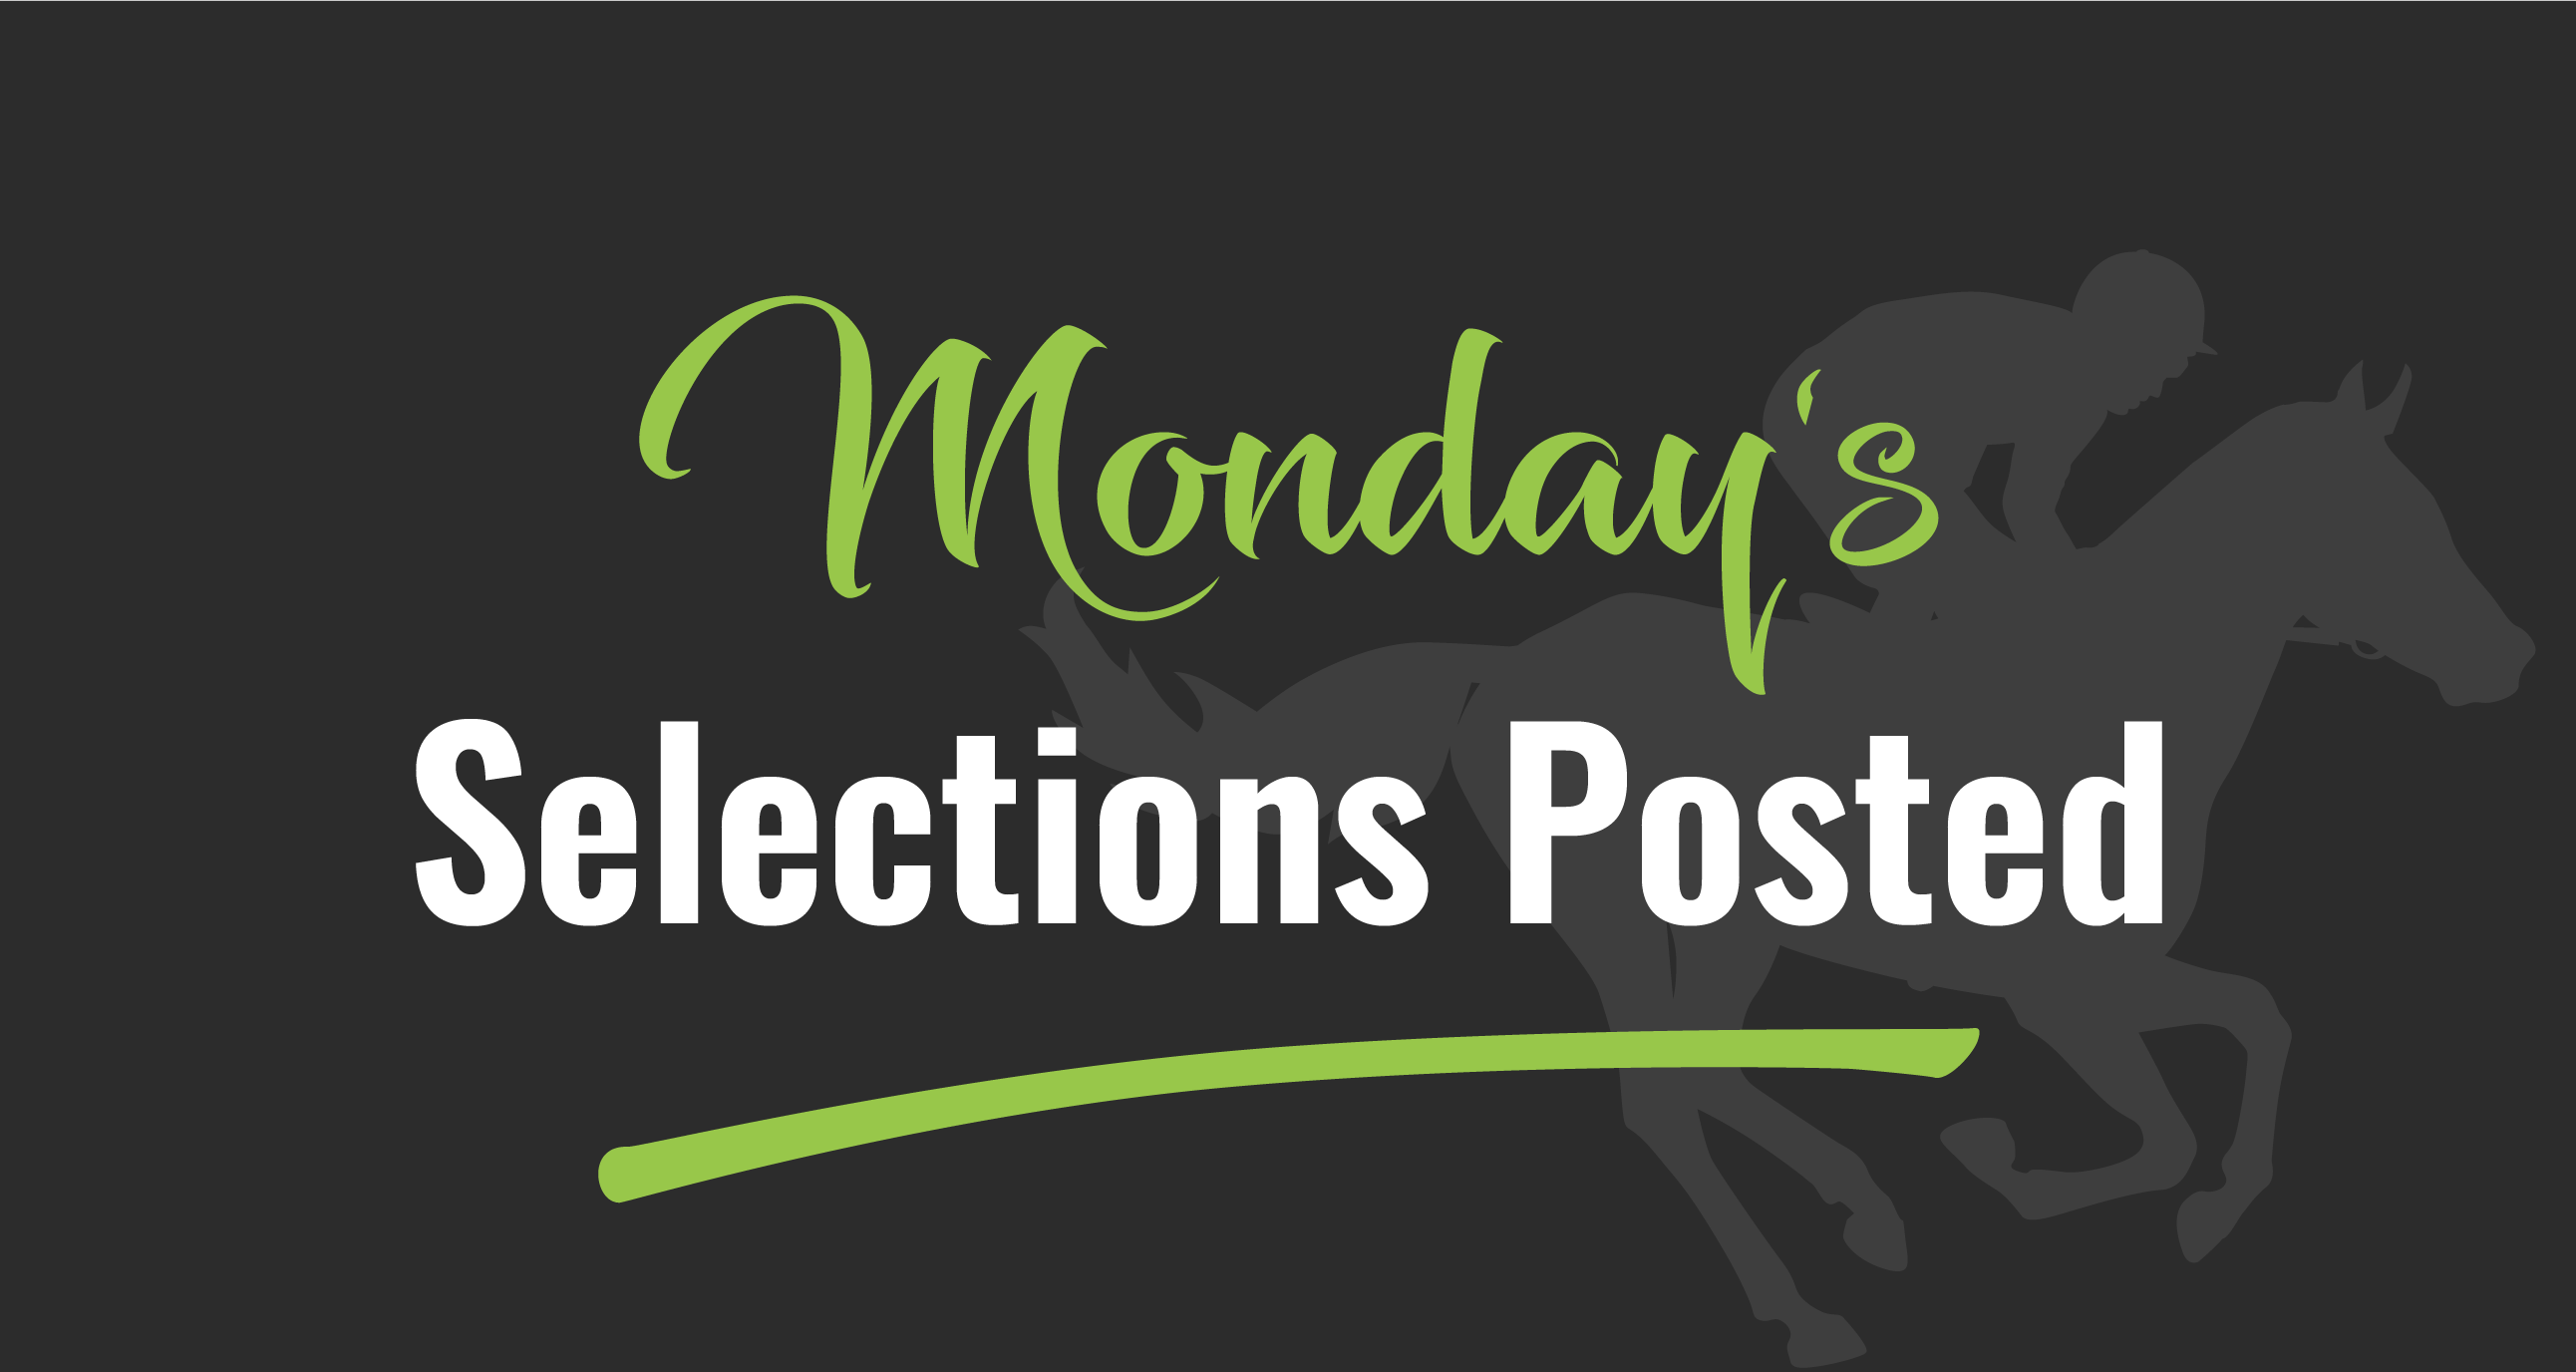 Selections for Monday 9 September 2019